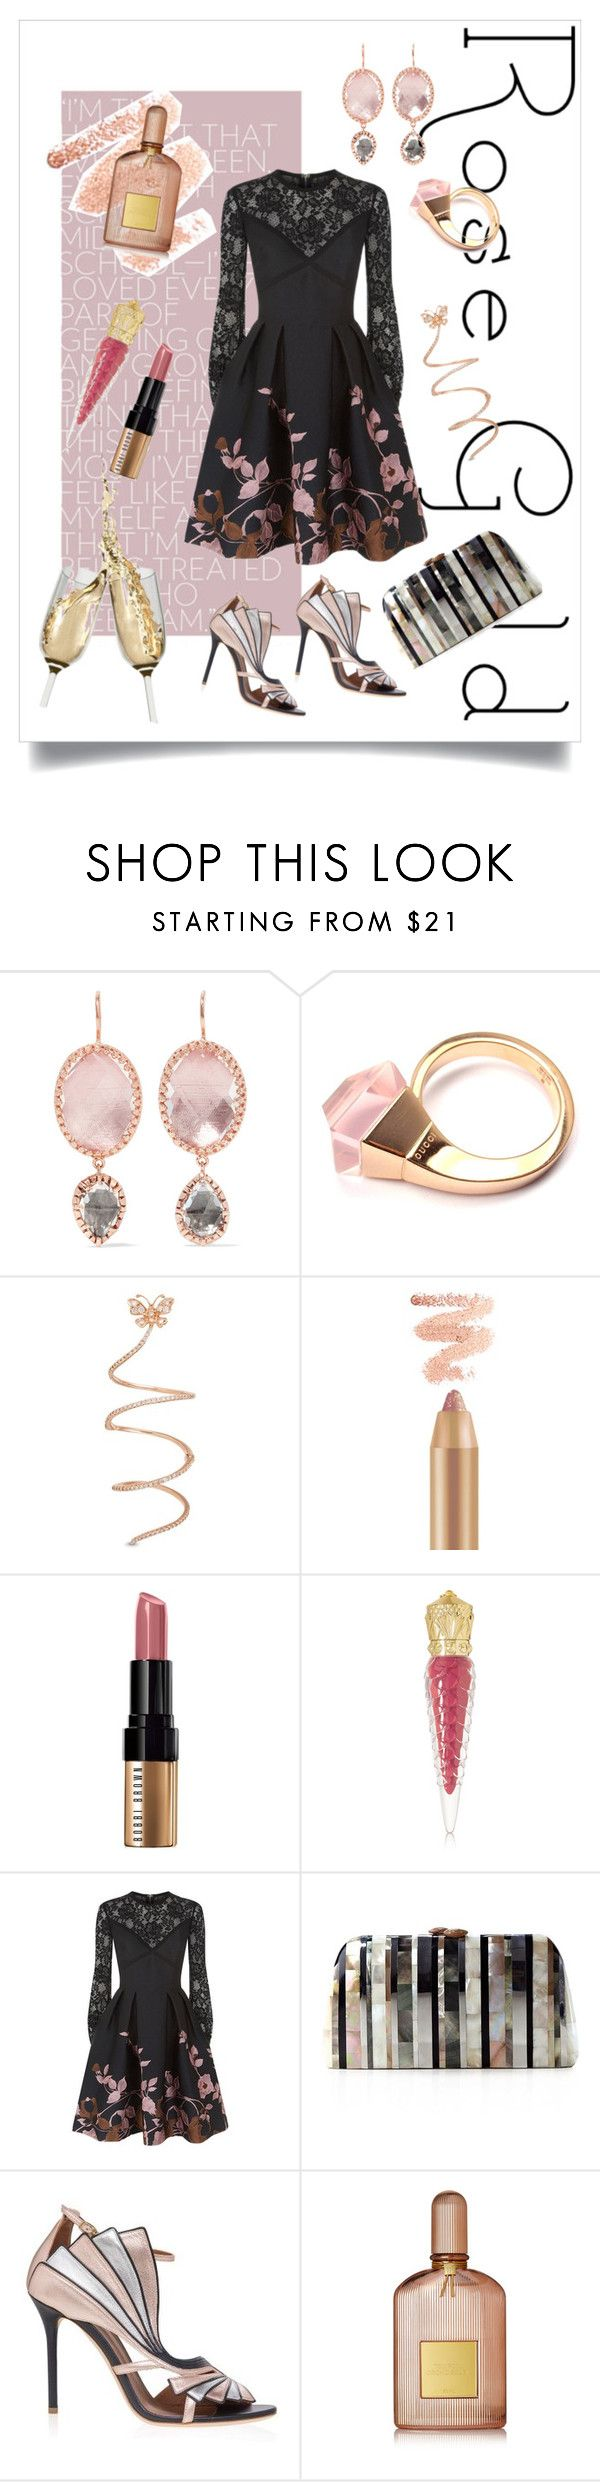 """Rose Gold"" by simpleautumn ❤ liked on Polyvore featuring Larkspur & Hawk, Gucci, Bobbi Brown Cosmetics, Christian Louboutin, Elie Saab, Serpui, Malone Souliers and Tom Ford"